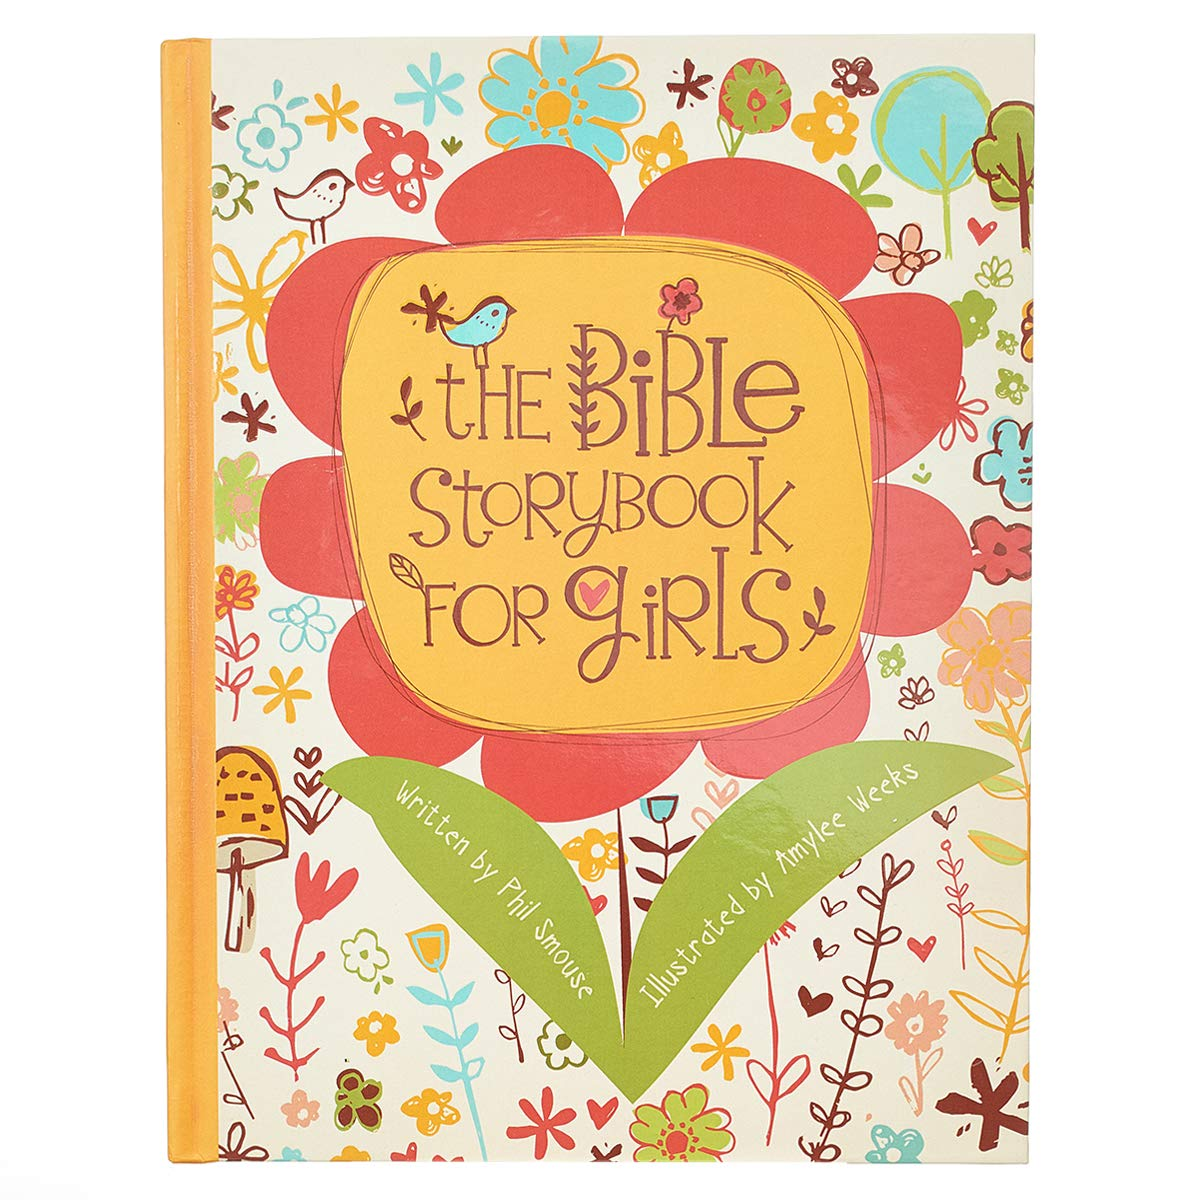 The Bible Storybook for Girls